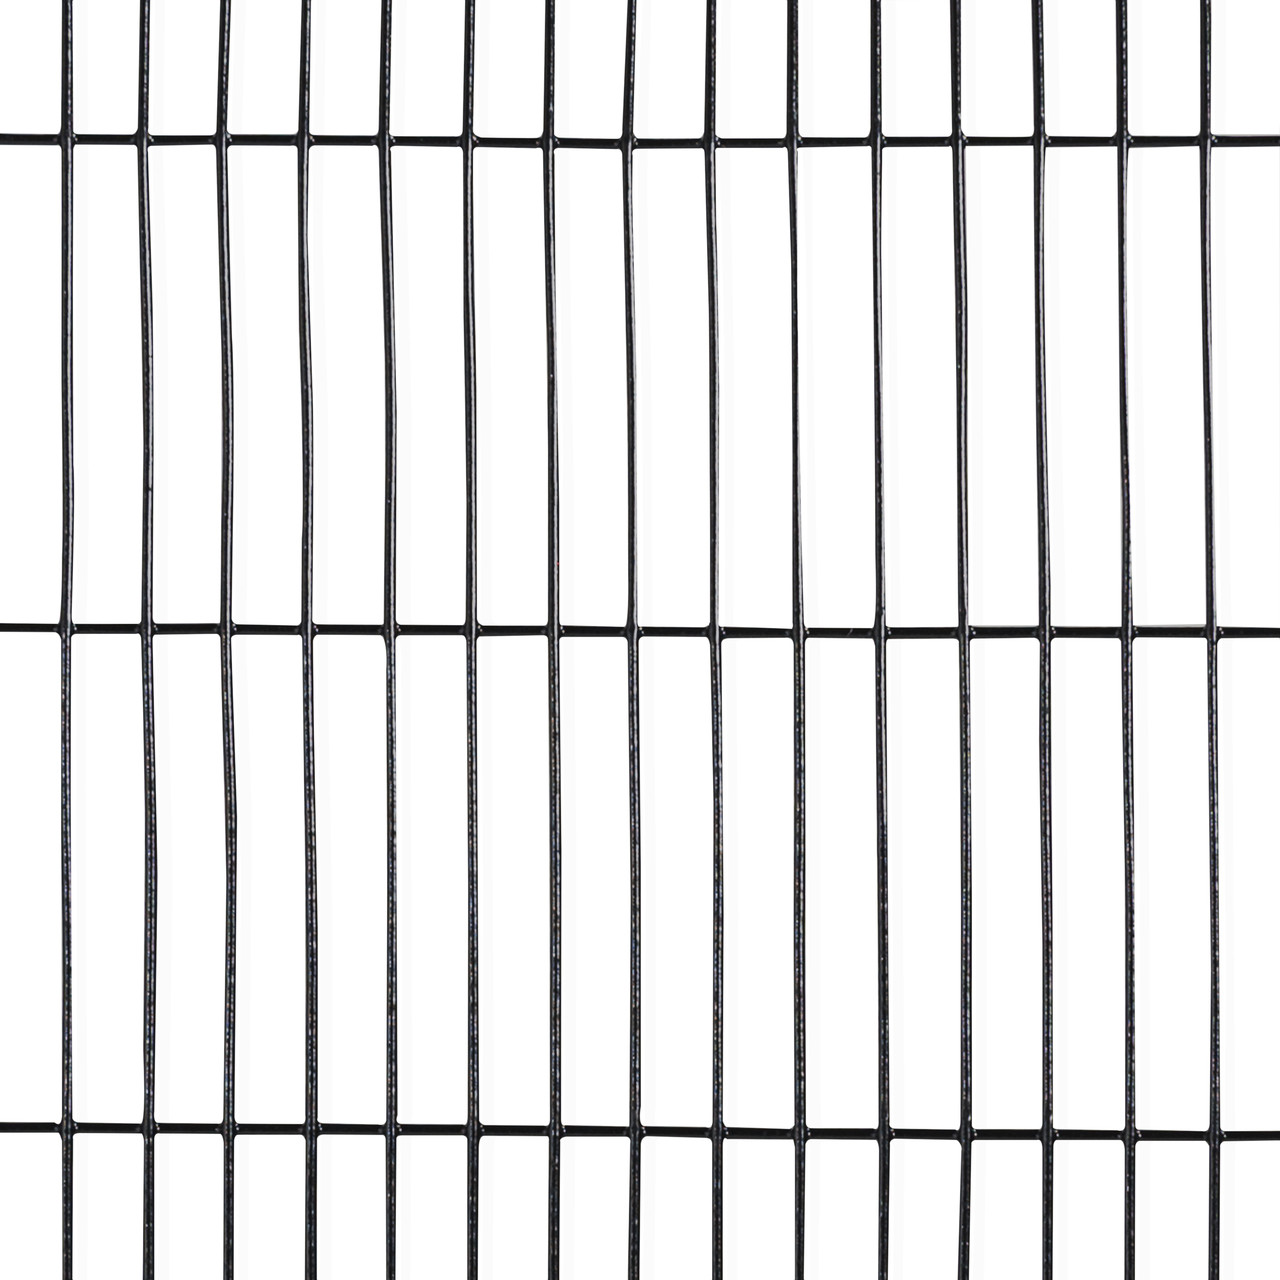 16 Gauge Black Vinyl Coated Welded Wire Mesh Size 0.5 inch by 3 inch ...